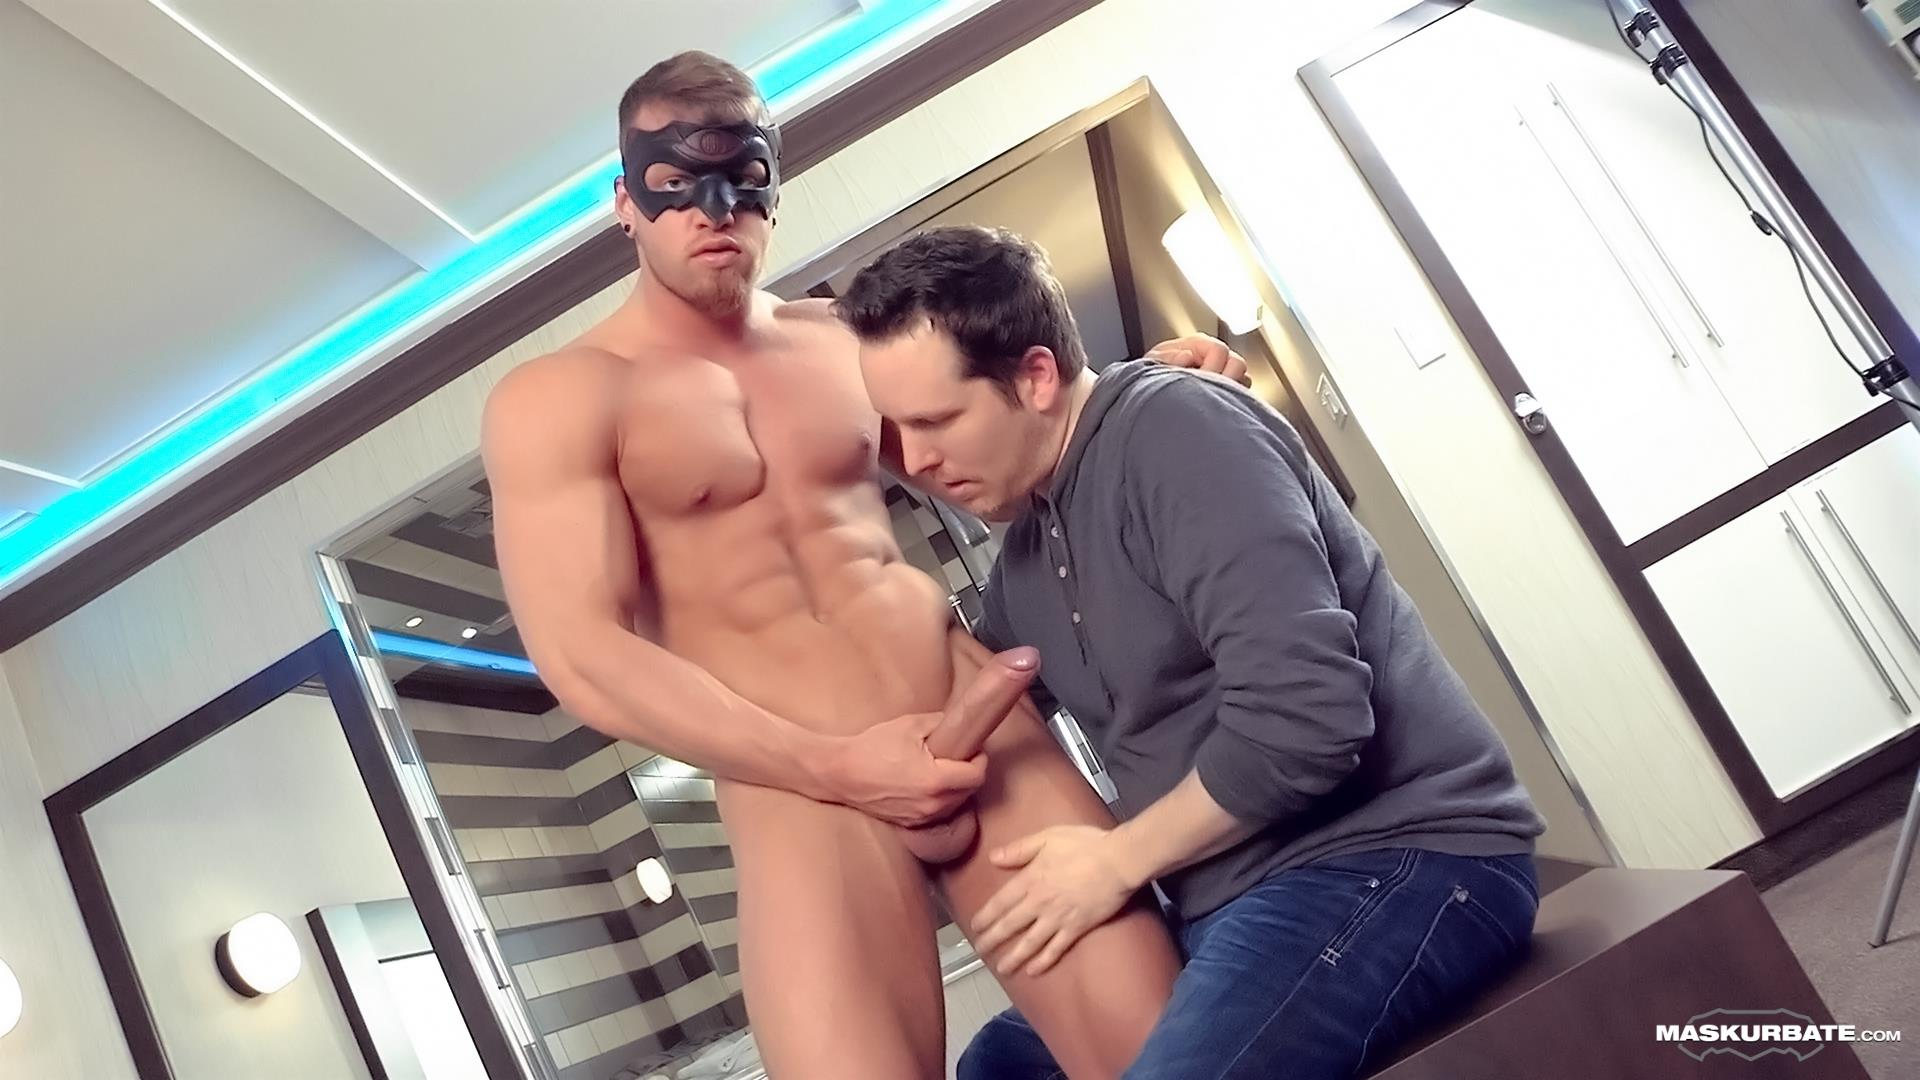 Maskurbate Pascal and Brad Straight Muscle Hunk With A Big Uncut Cock Jerking His Cock Amateur Gay Porn 07 Worshipping A Straight Muscle Hunk With A Big Uncut Cock